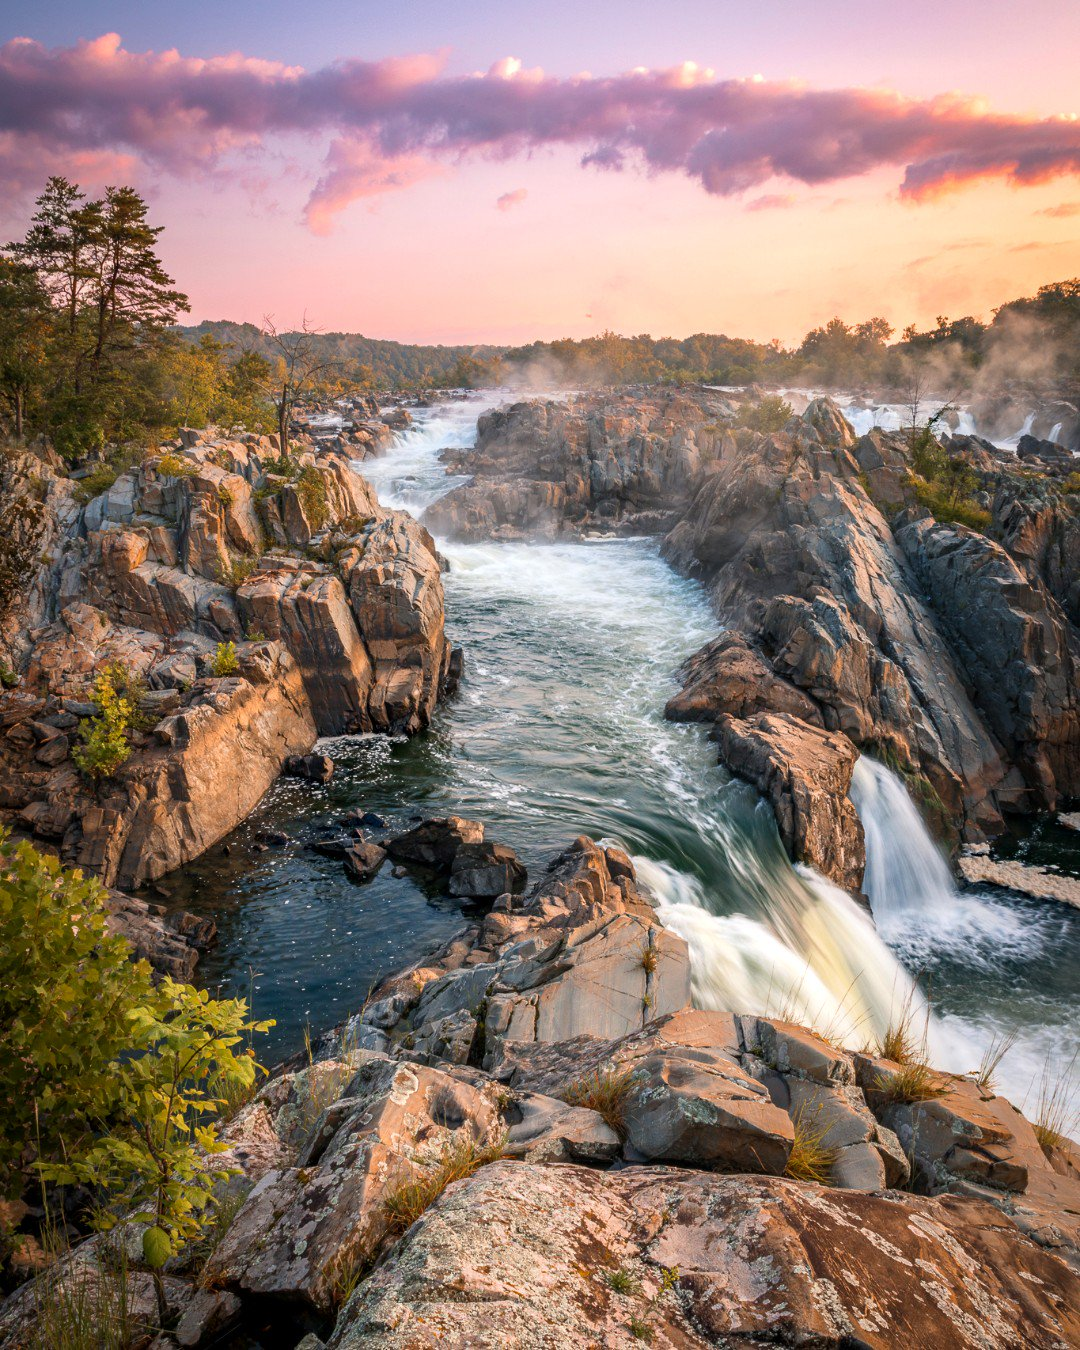 Serene sunrise over the thundering river at Great Falls Park. Pic courtesy of Gabe Leidy #Virginia #FindYourPark https://t.co/cZmOW94uzT